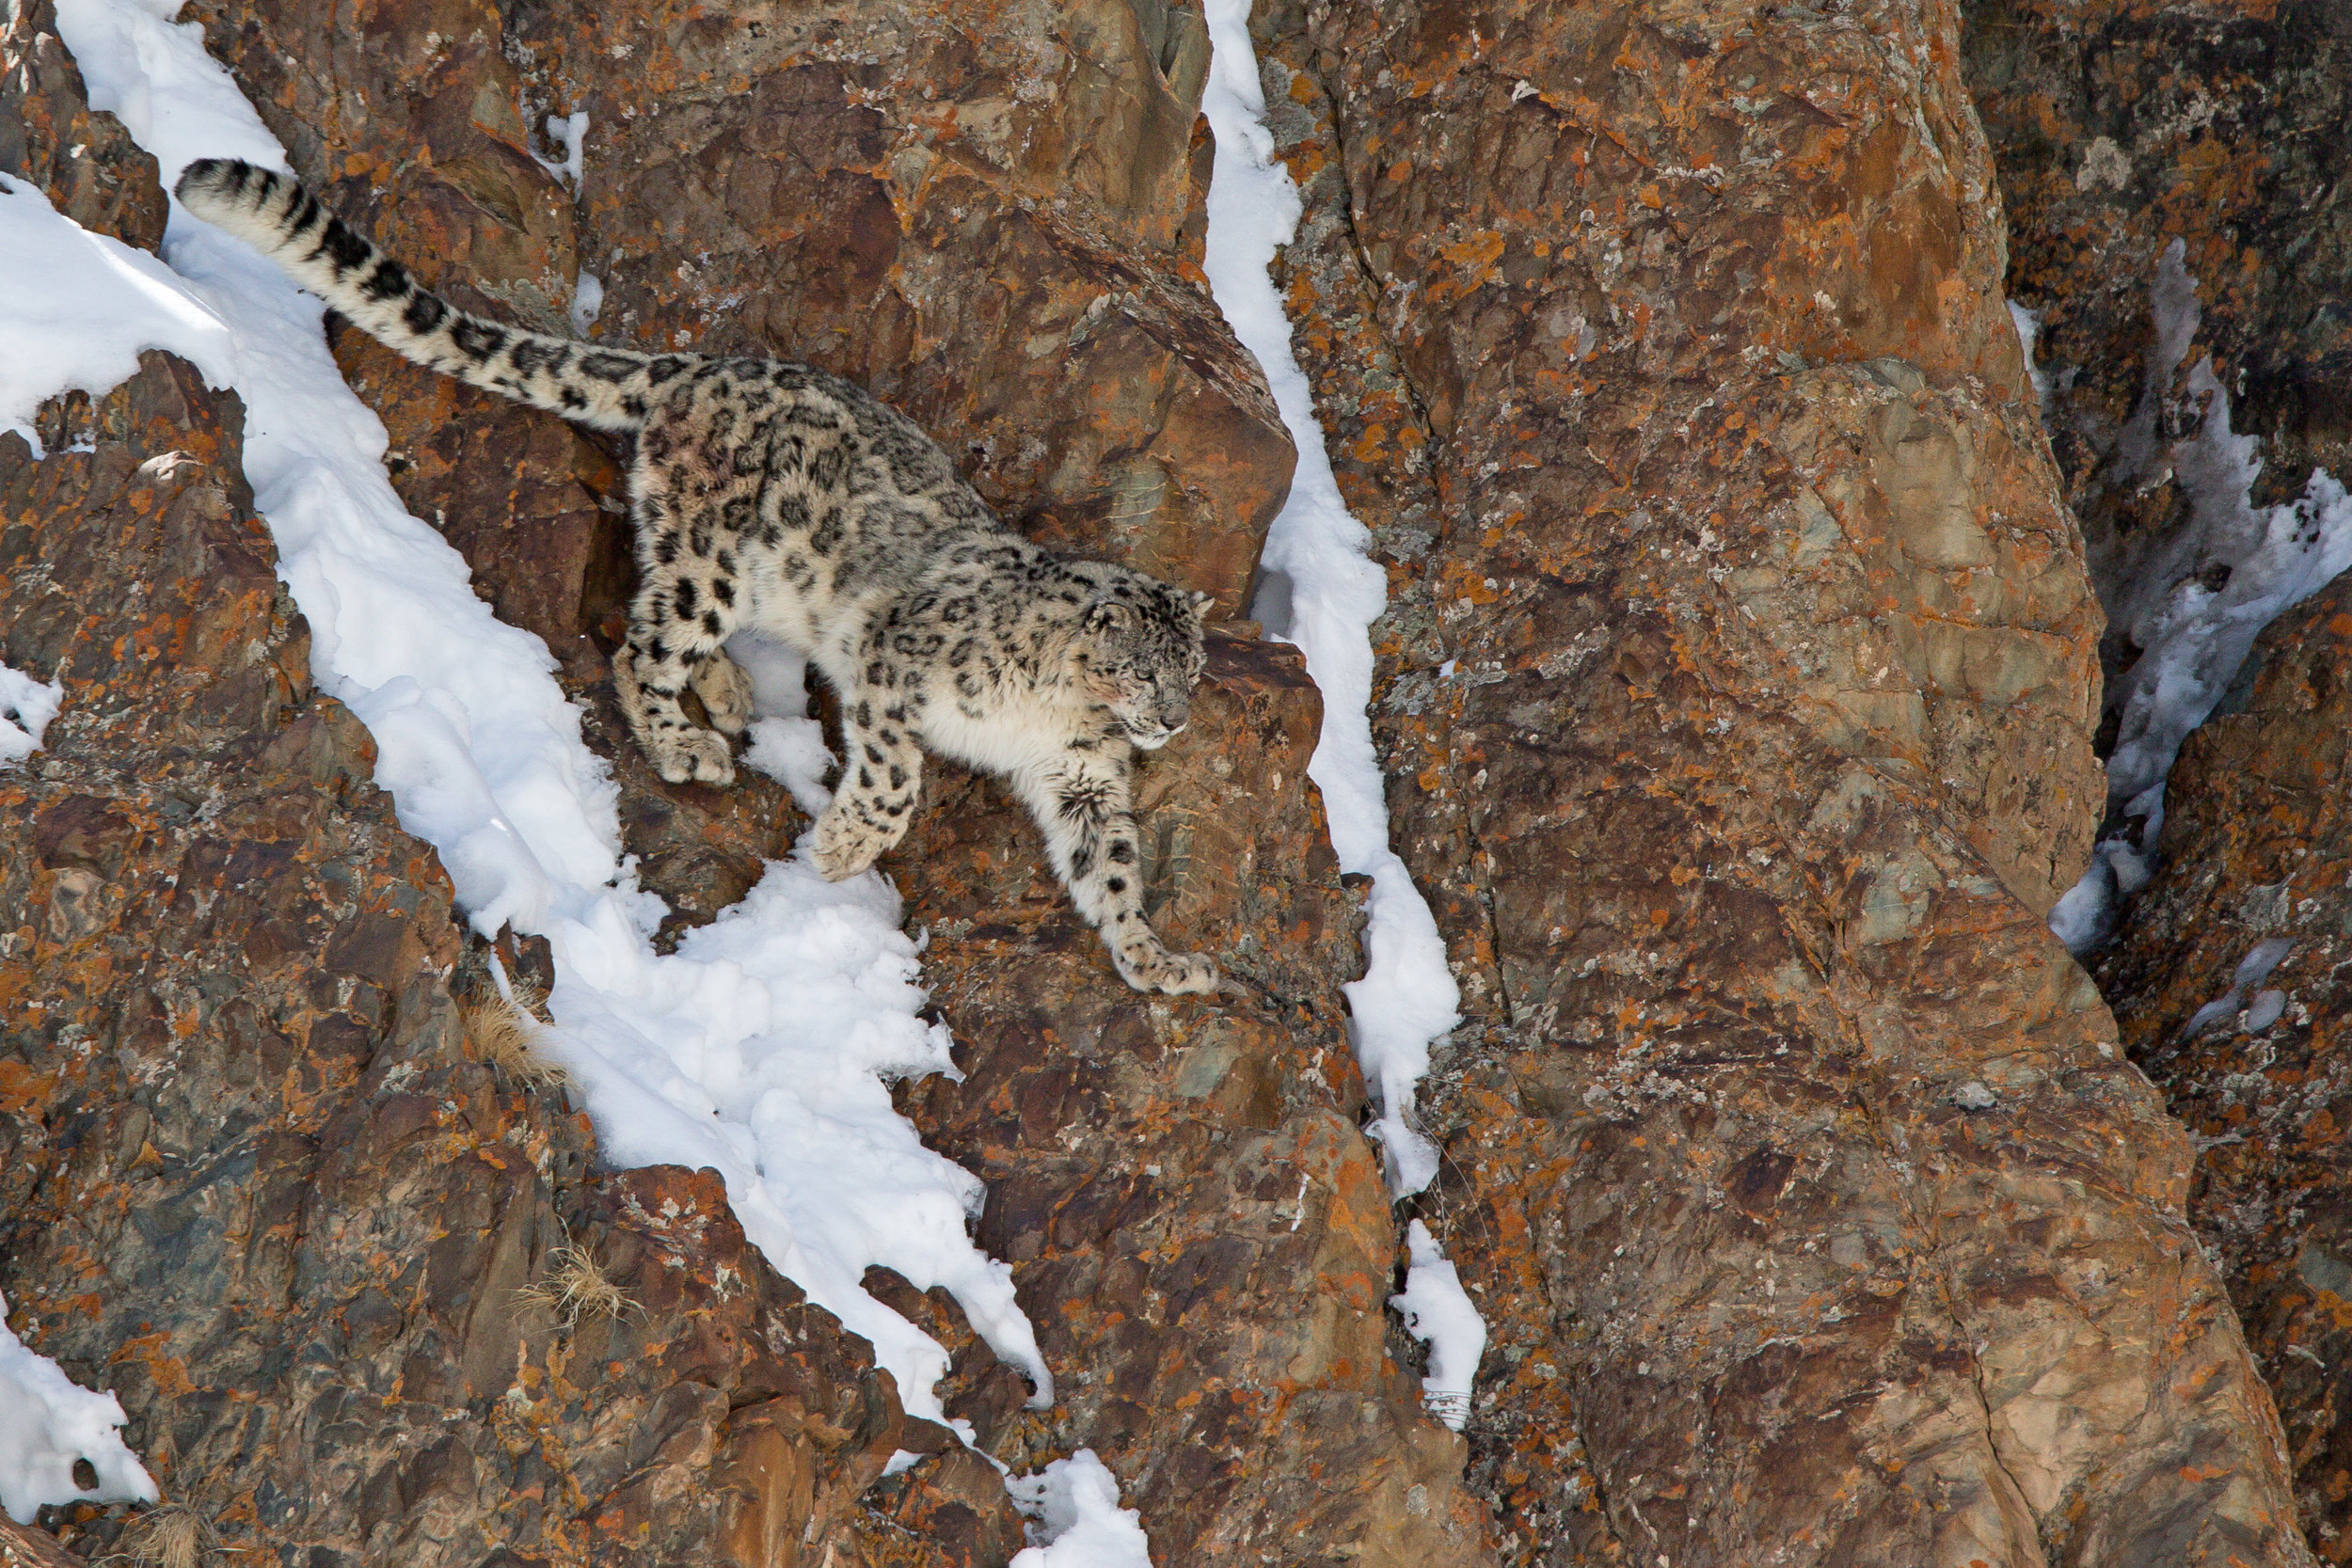 A Snow Leopard makes its way down a cliff face in Hemis National Park, Ladakh